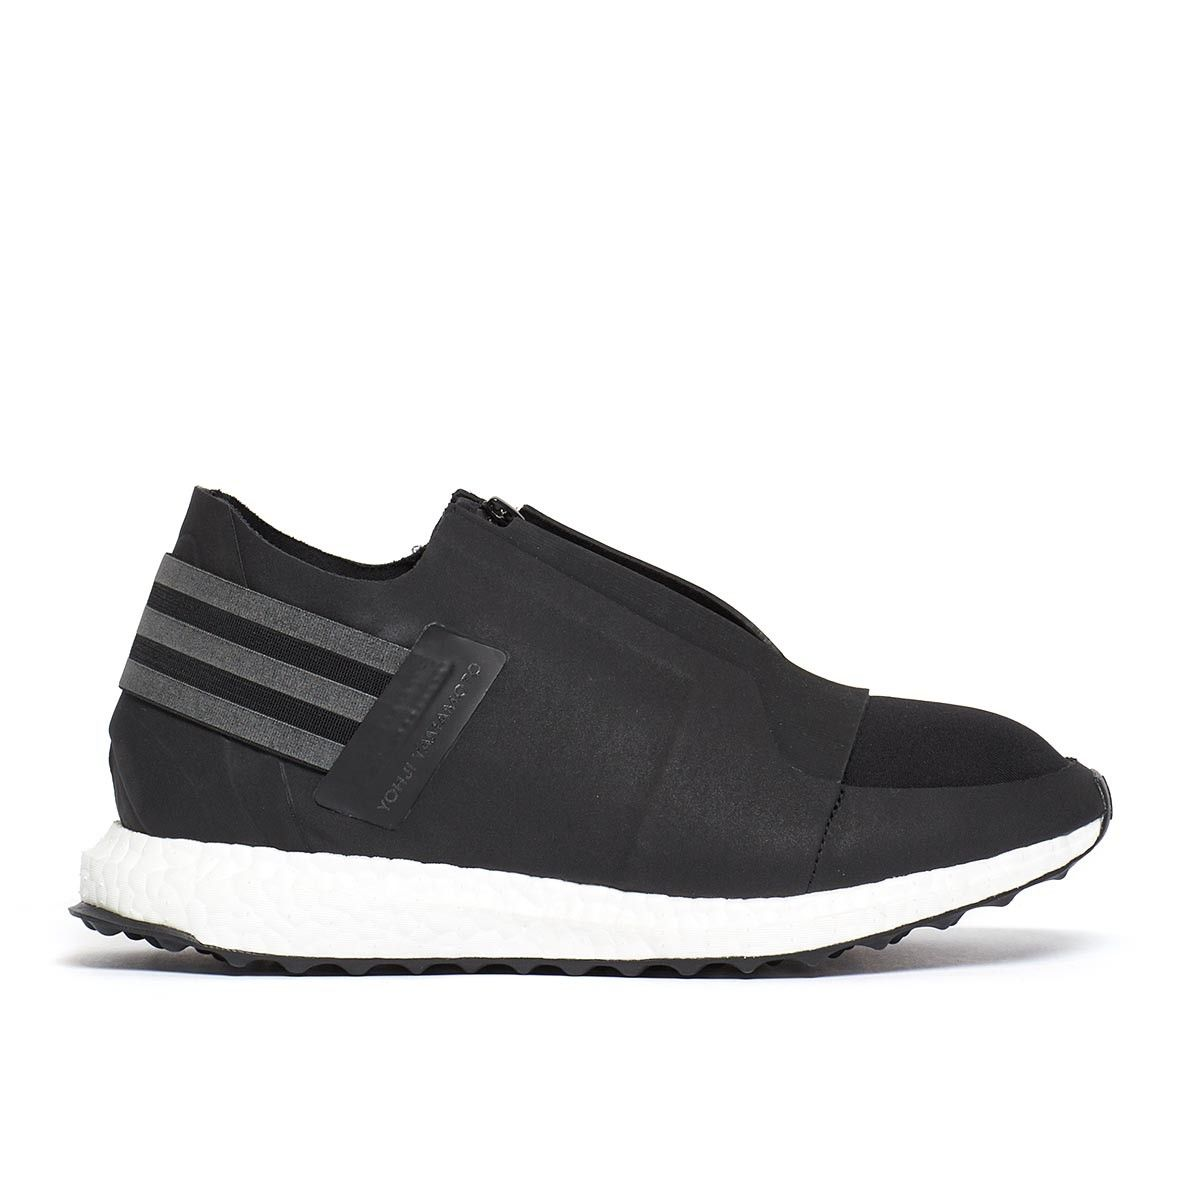 Xray Zip low sneakers from the F/W2016-17 Y-3 by Yohji Yamamoto collection  in black